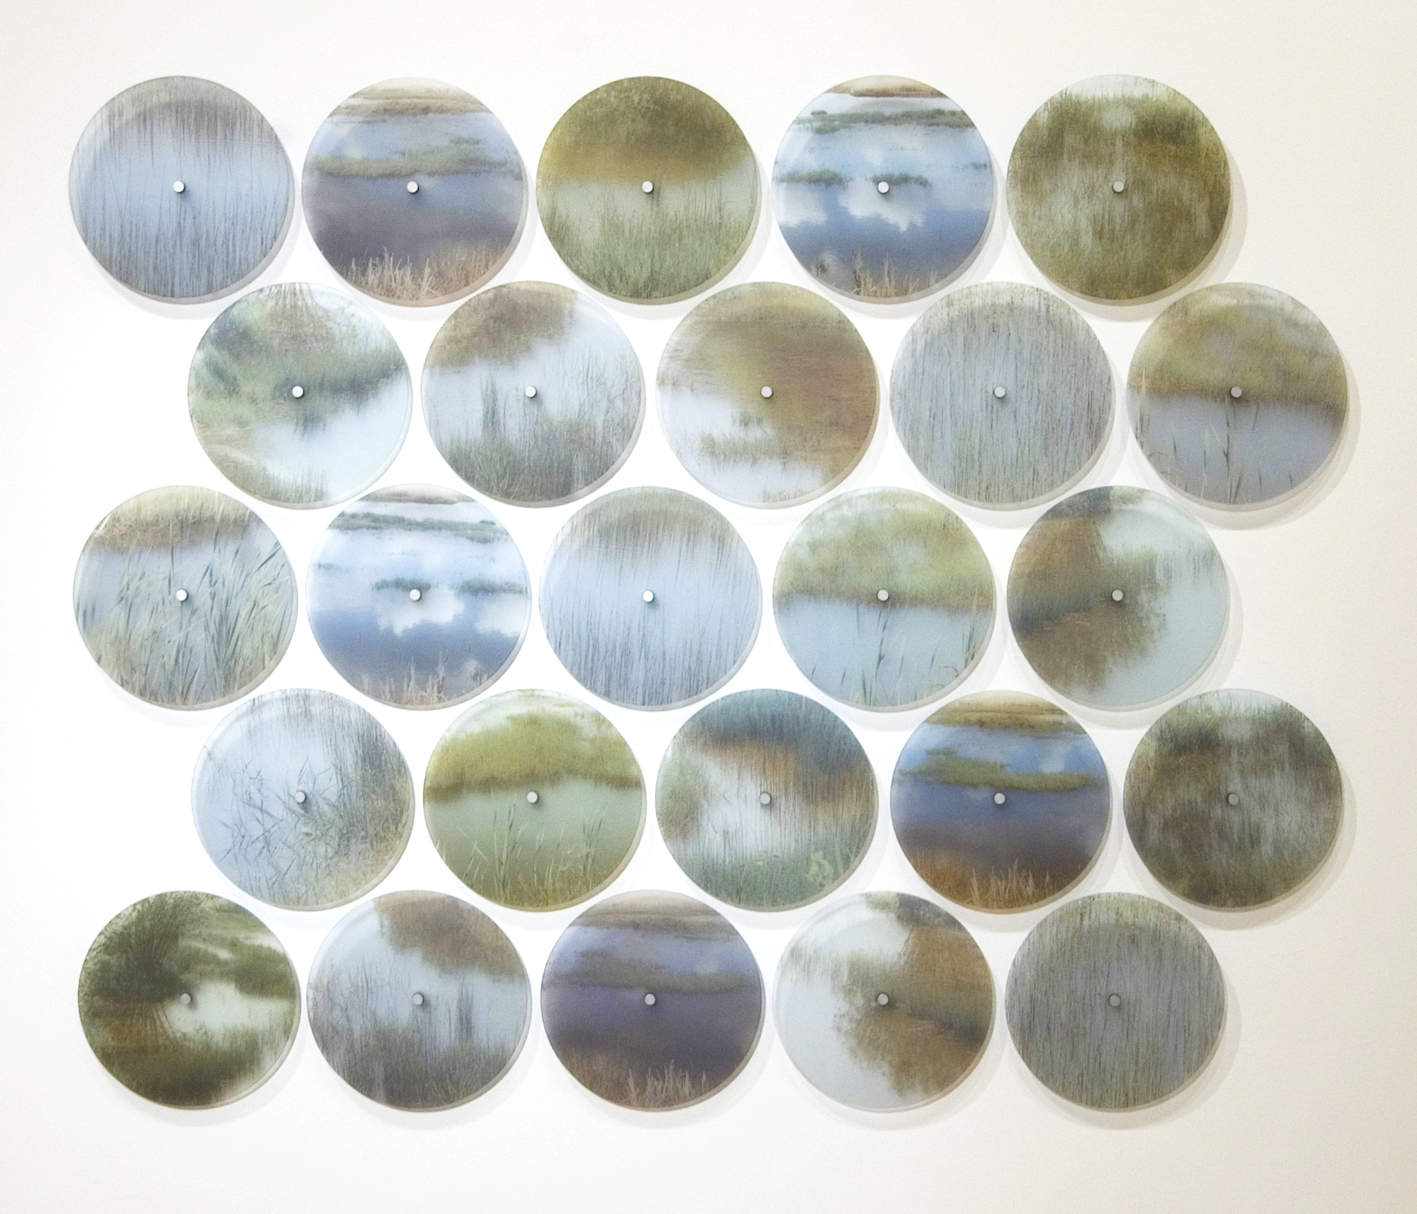 1 Time Lapse Marazion Marshes] Fired glass disc installation, 125cm x 150cm.JPG